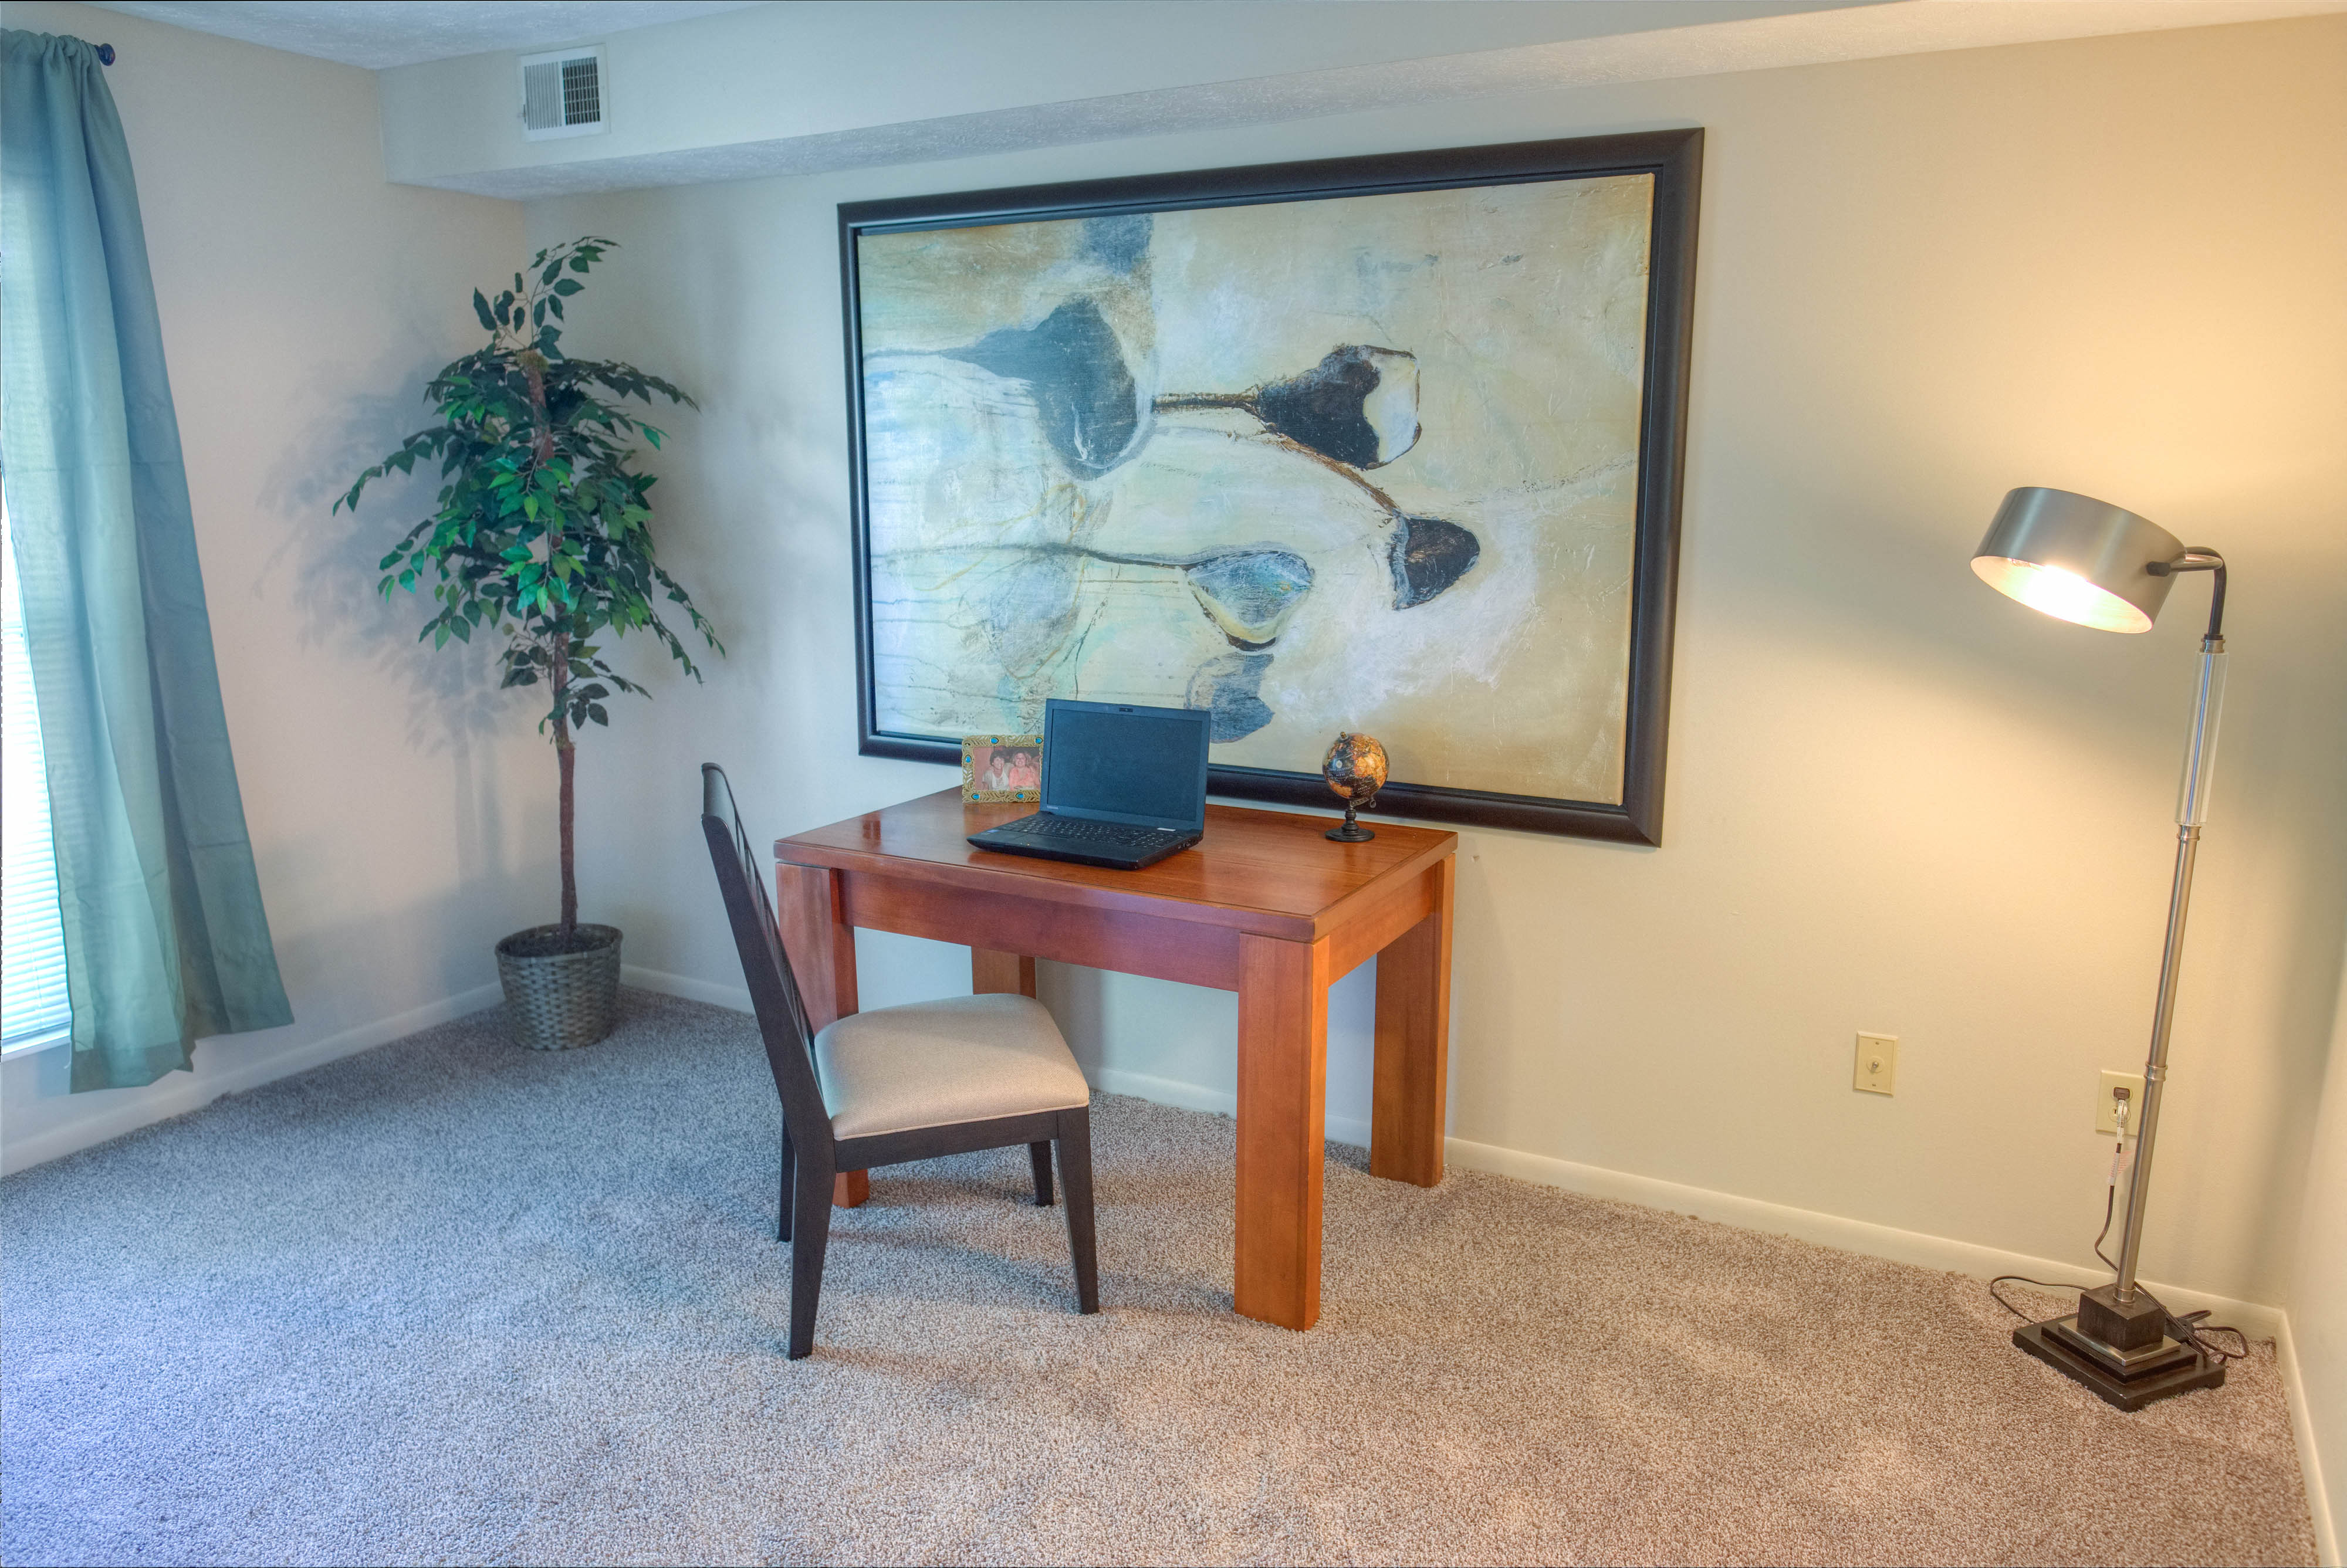 Office Space or Bedroom at Pine Lane Estates